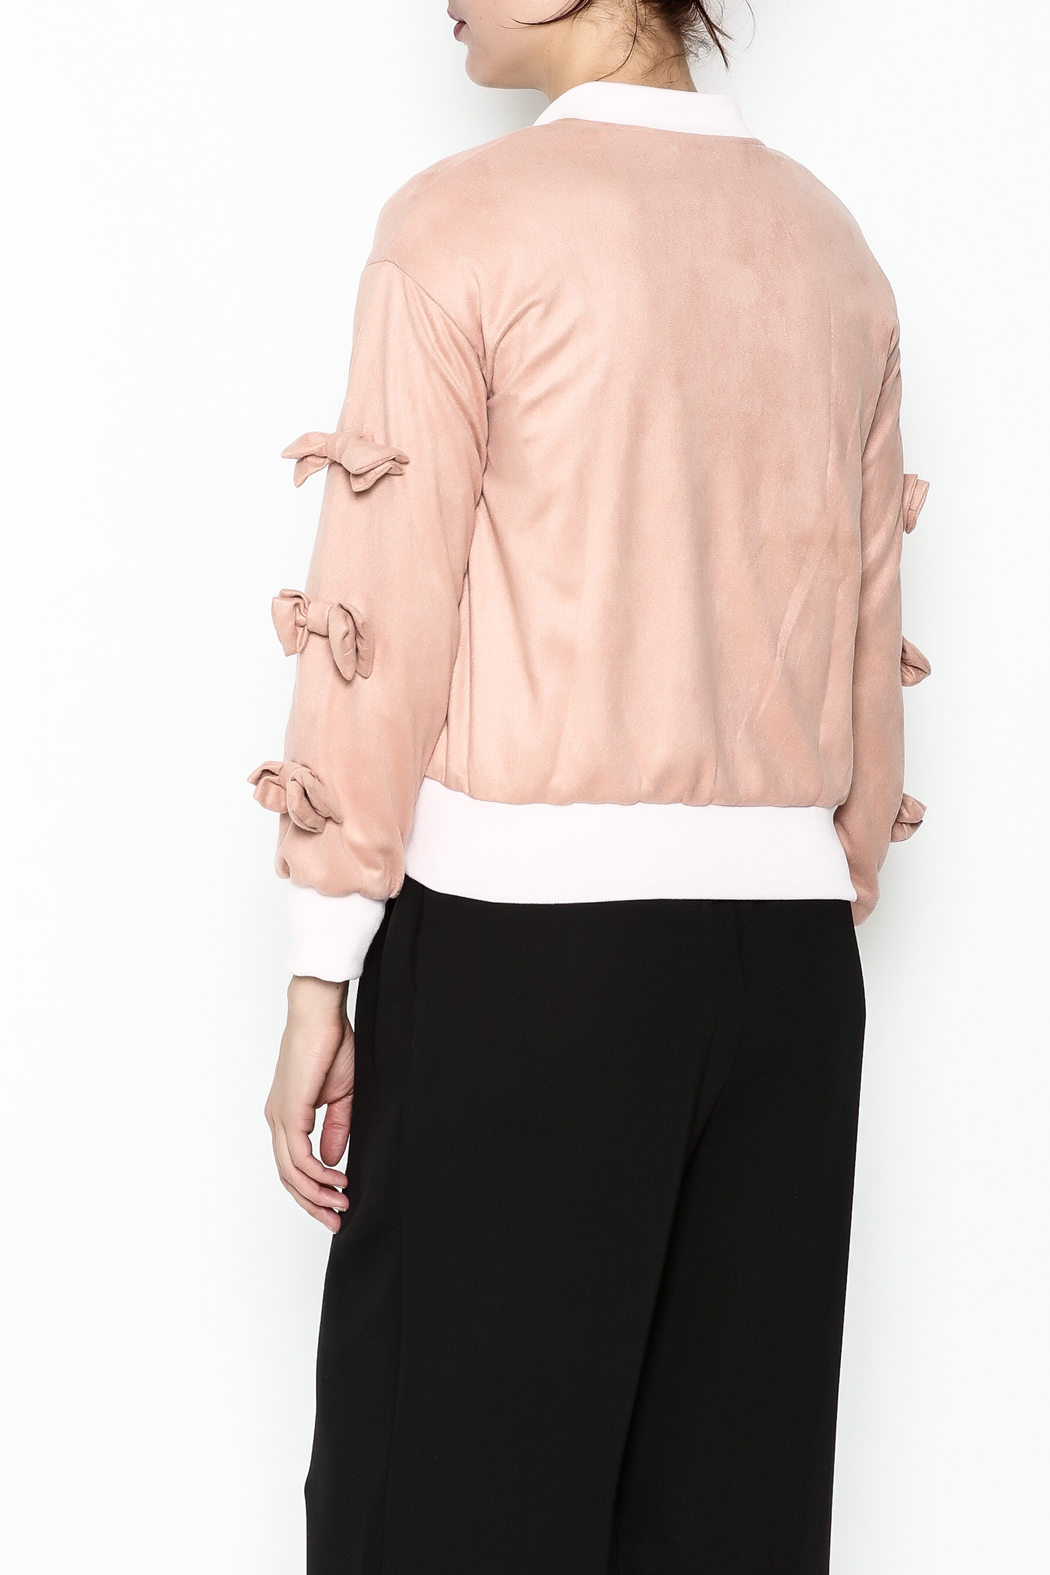 Fashion Pickle Pink Bow Jacket - Back Cropped Image